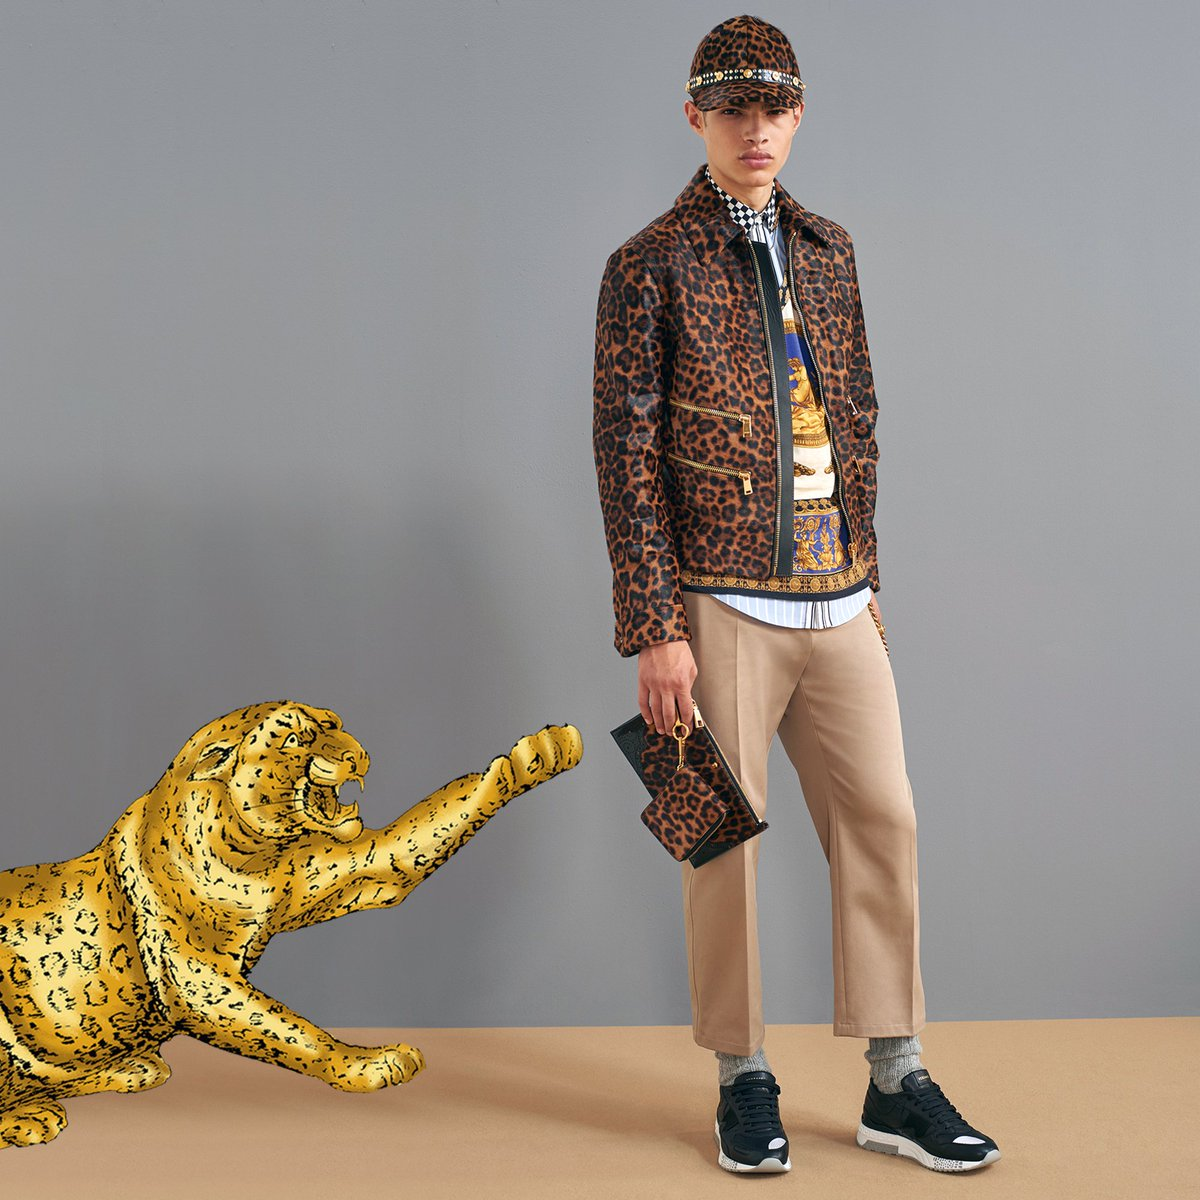 Wild 'n out. Discover the #VersacePreFall18 animalier prints for him now: https://t.co/NoSI7cjSmf